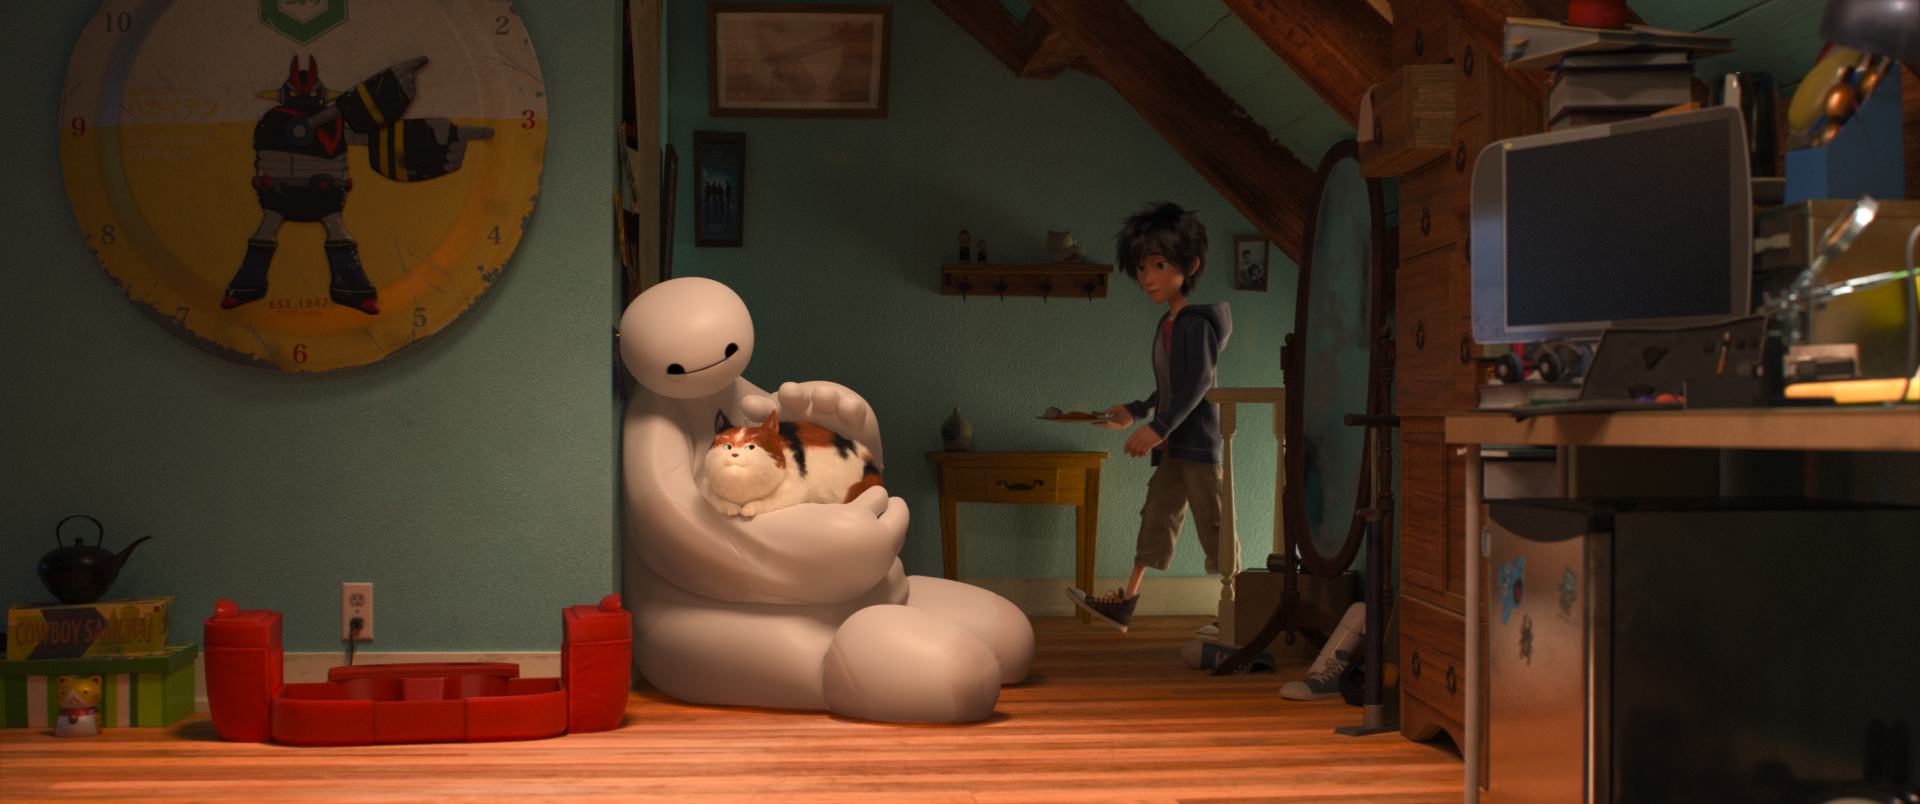 'Big Hero 6' brings humor and heart to New York Comic Con